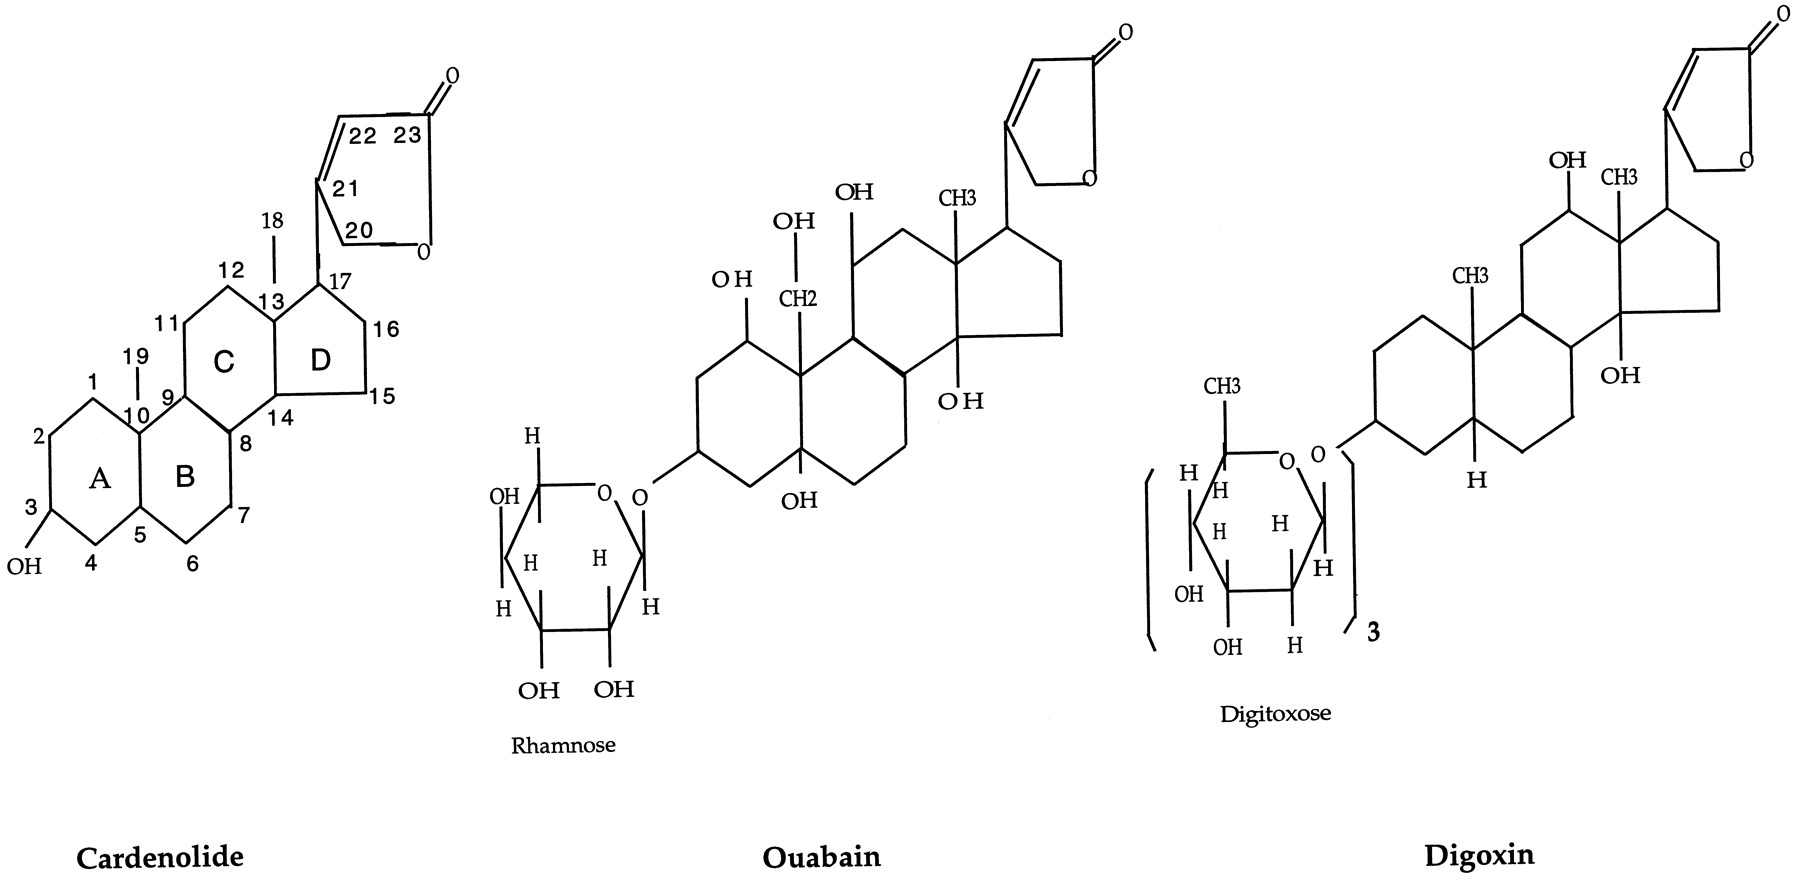 Monoclonal Antibo S That Distinguish Between Two Related Digitalis Glycosides Ouabain And